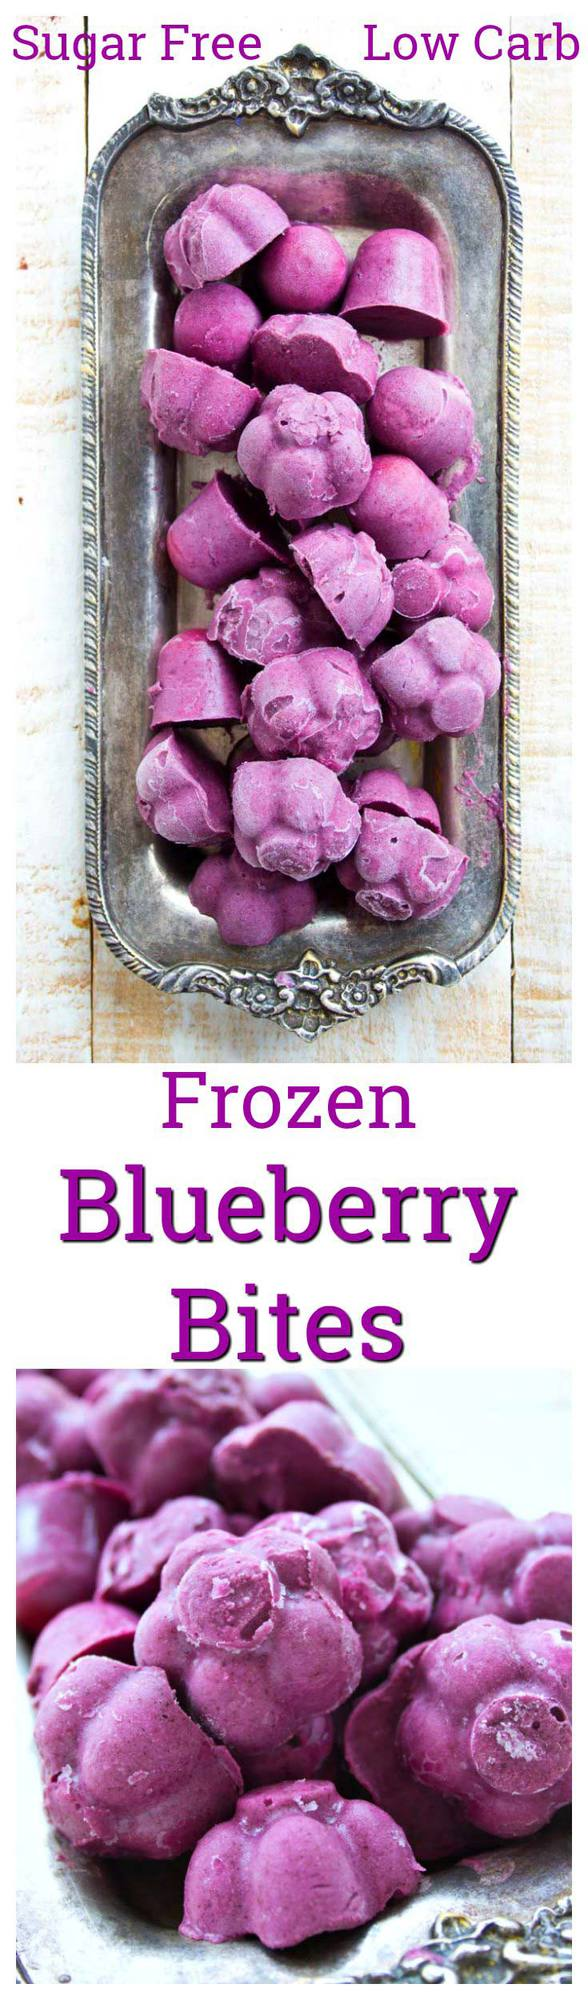 These 3 ingredient frozen blueberry bites are such a refreshing fruity treat. Sweetened with stevia, it's an easy recipe that is low carb, gluten free and vegan. Can be made in any ice cube tray! #lowcarb #sugarfree #vegan #blueberries #dessert #frozen